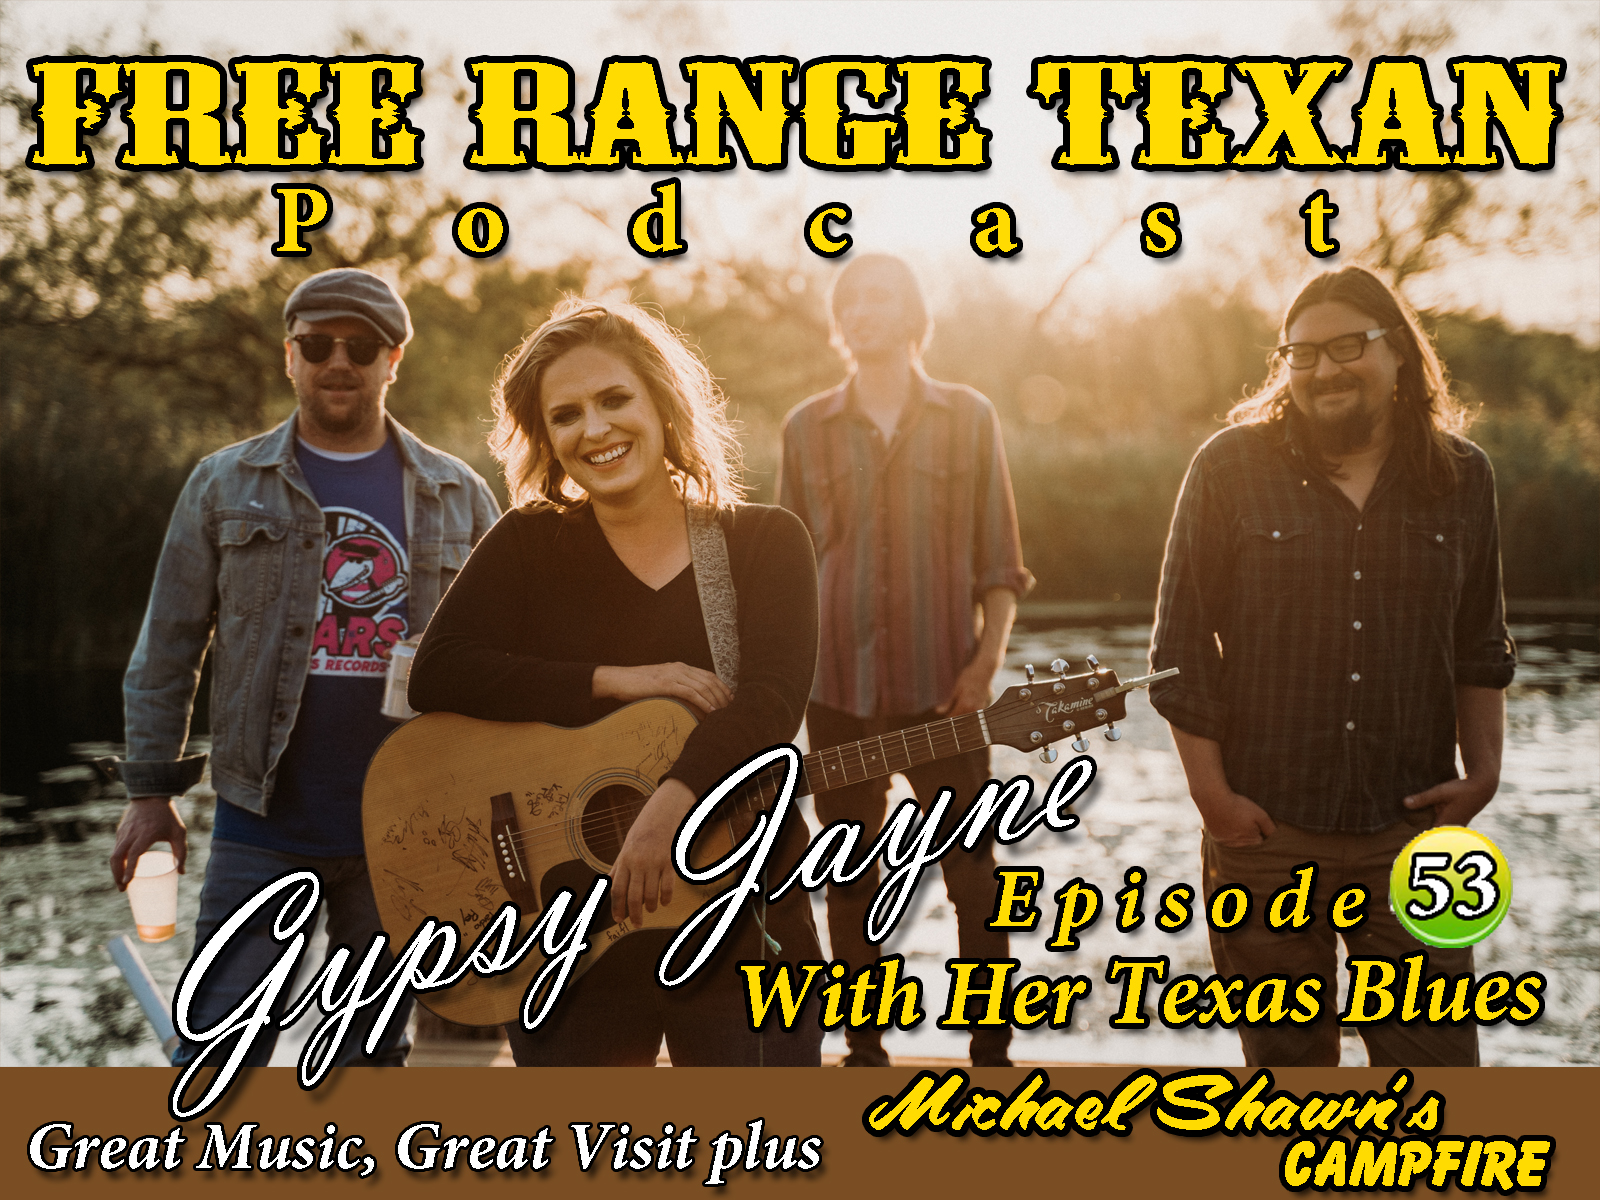 Free Range Texan Podcast Episode 53